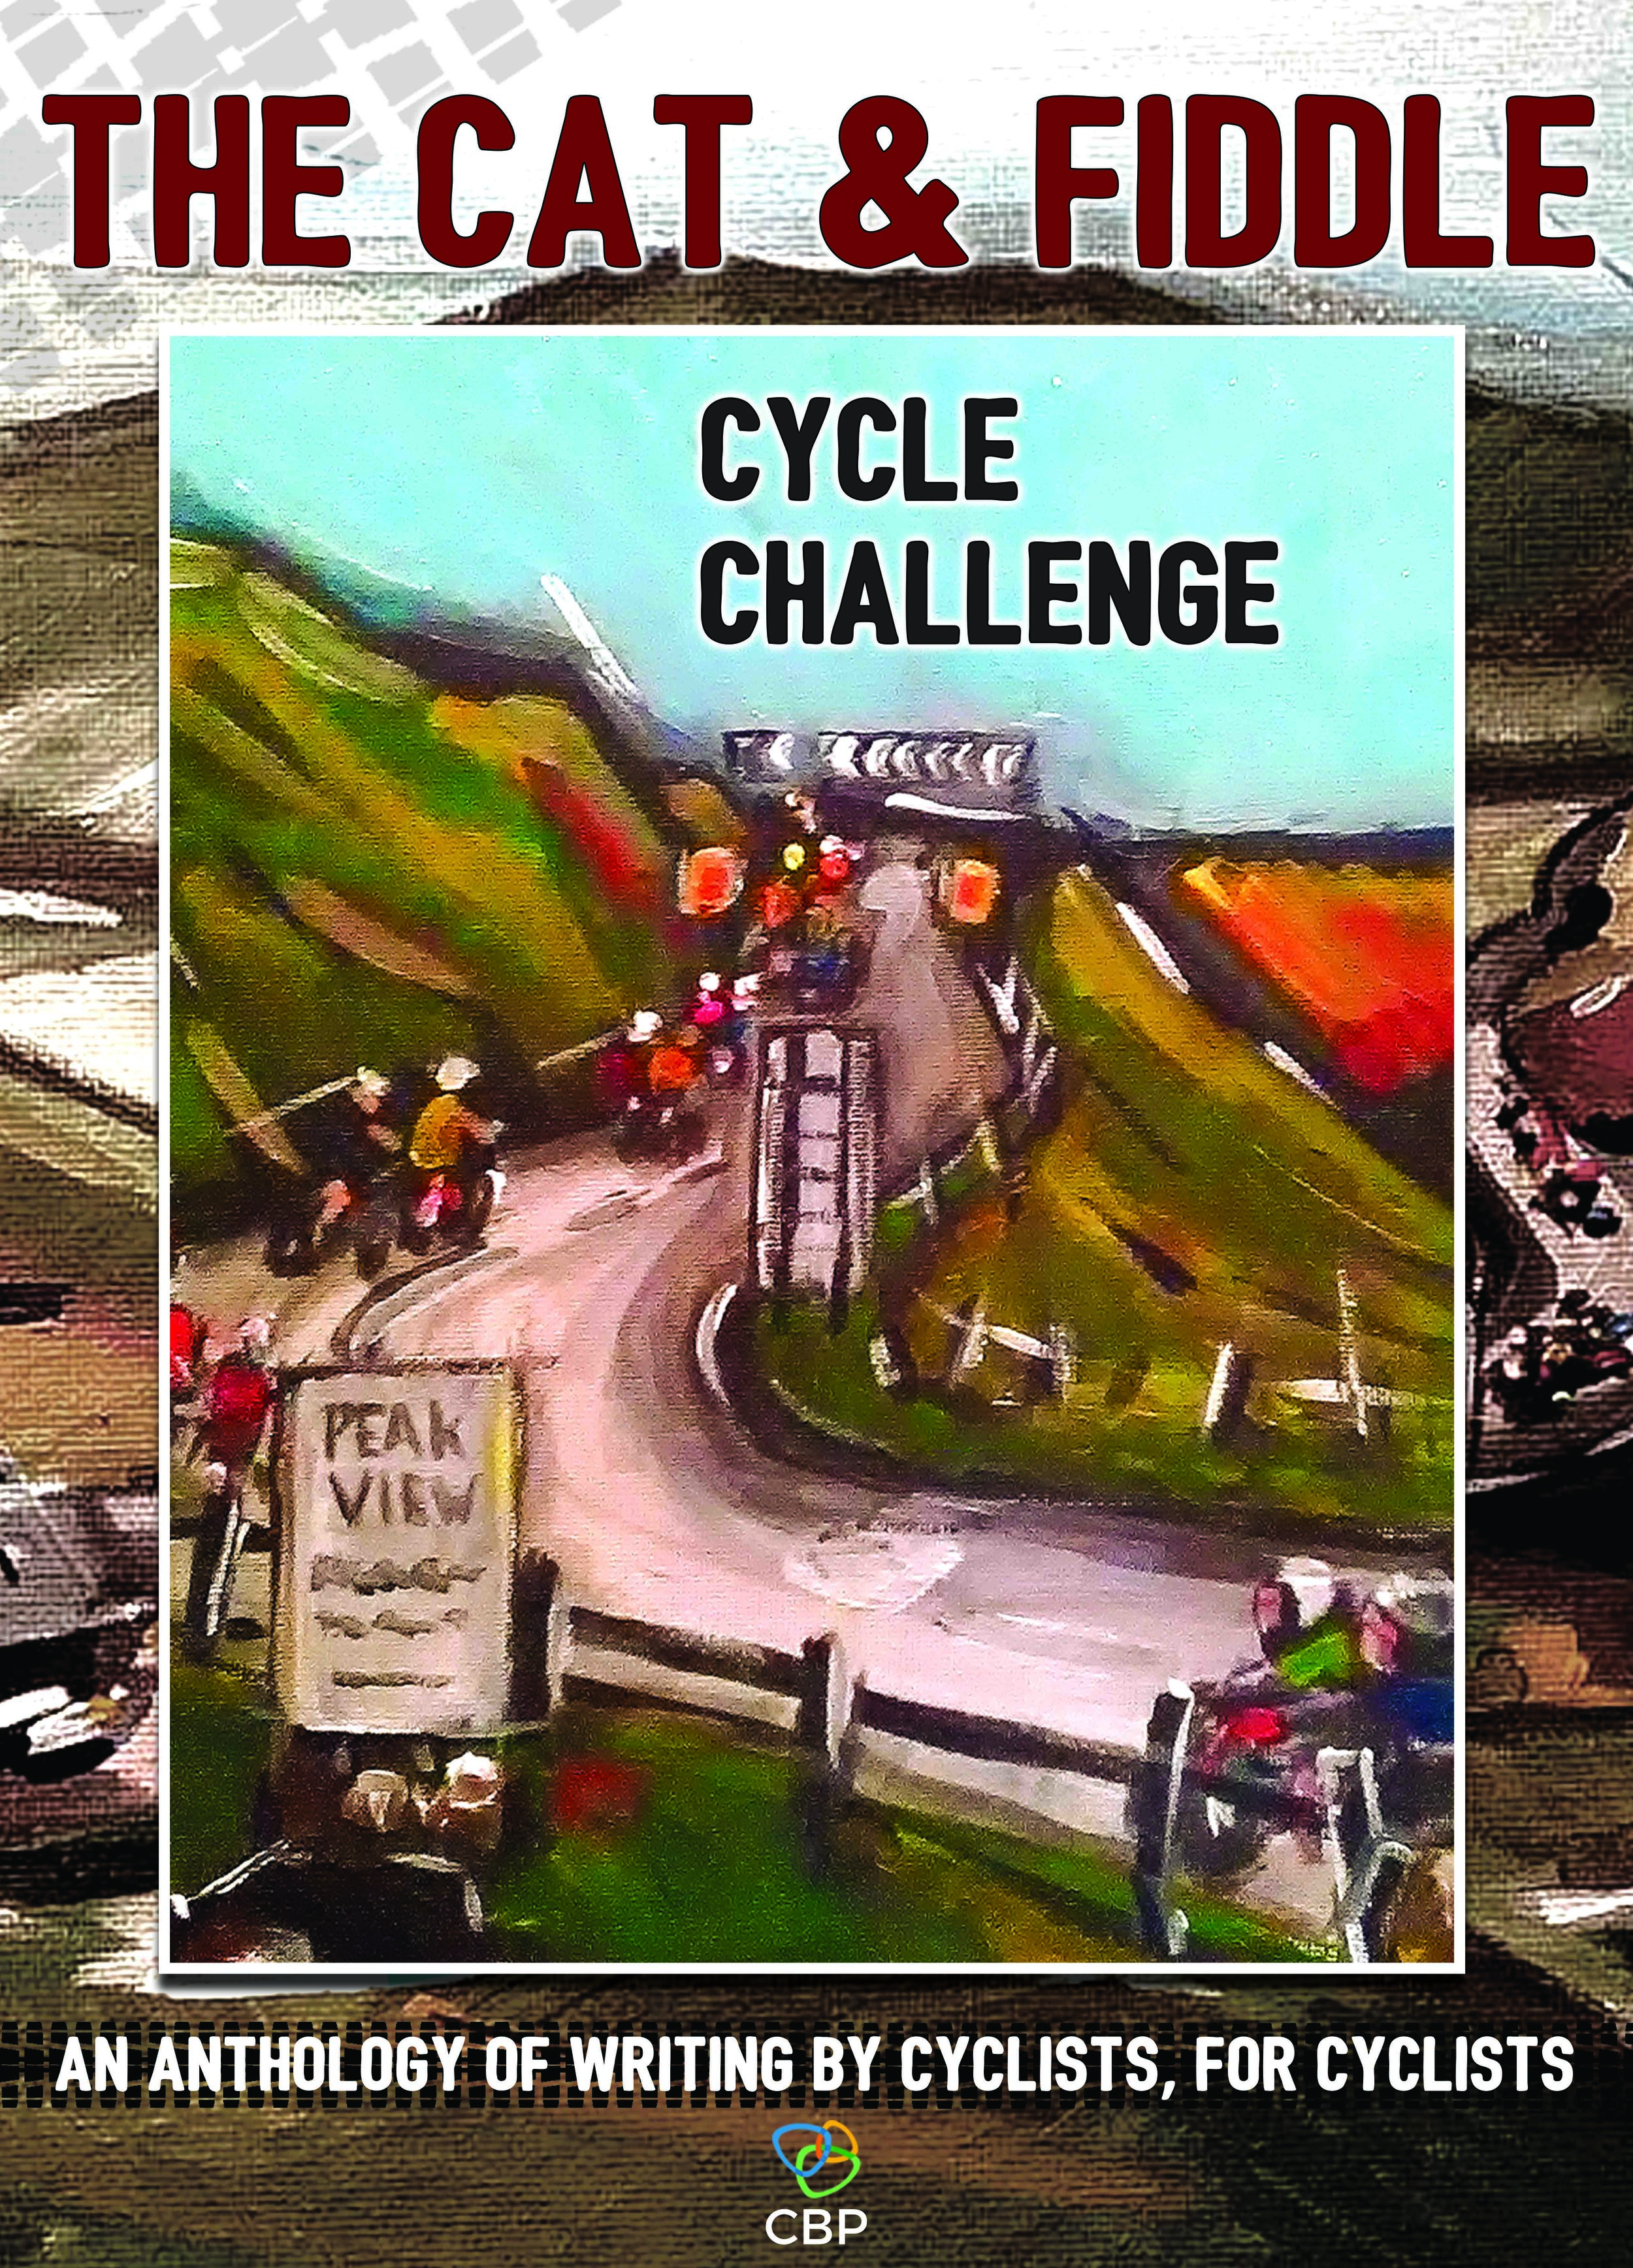 Our book of the annual Cat & Fiddle cycle ride, written by participants, organisers, volunteers and painting a wonderful picture of an epc cycle challenge.